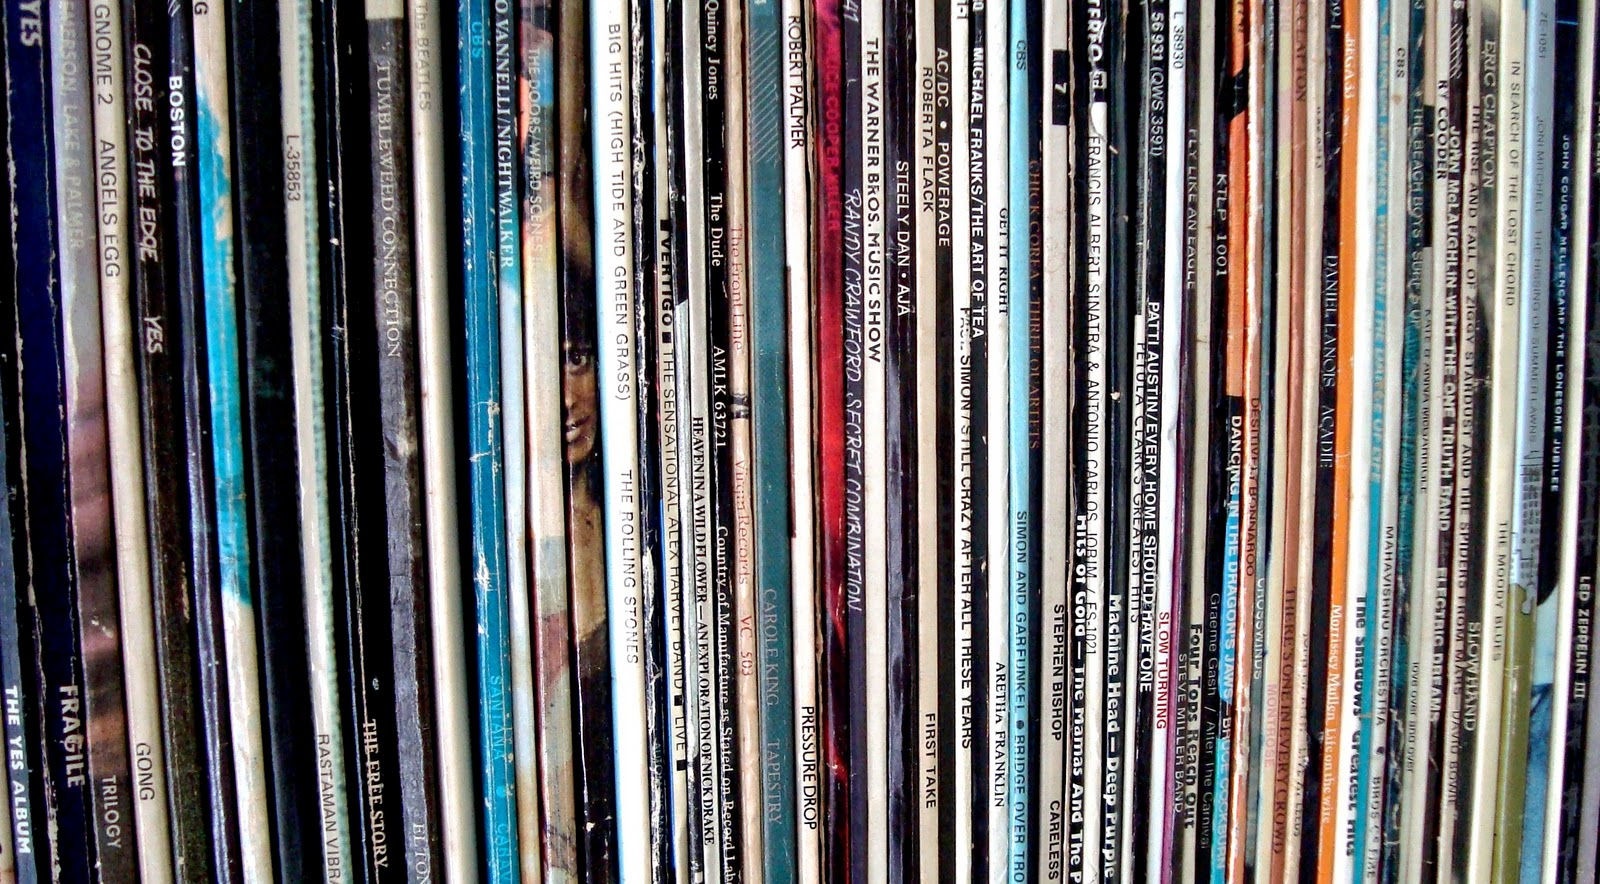 vinyl albums are awesome